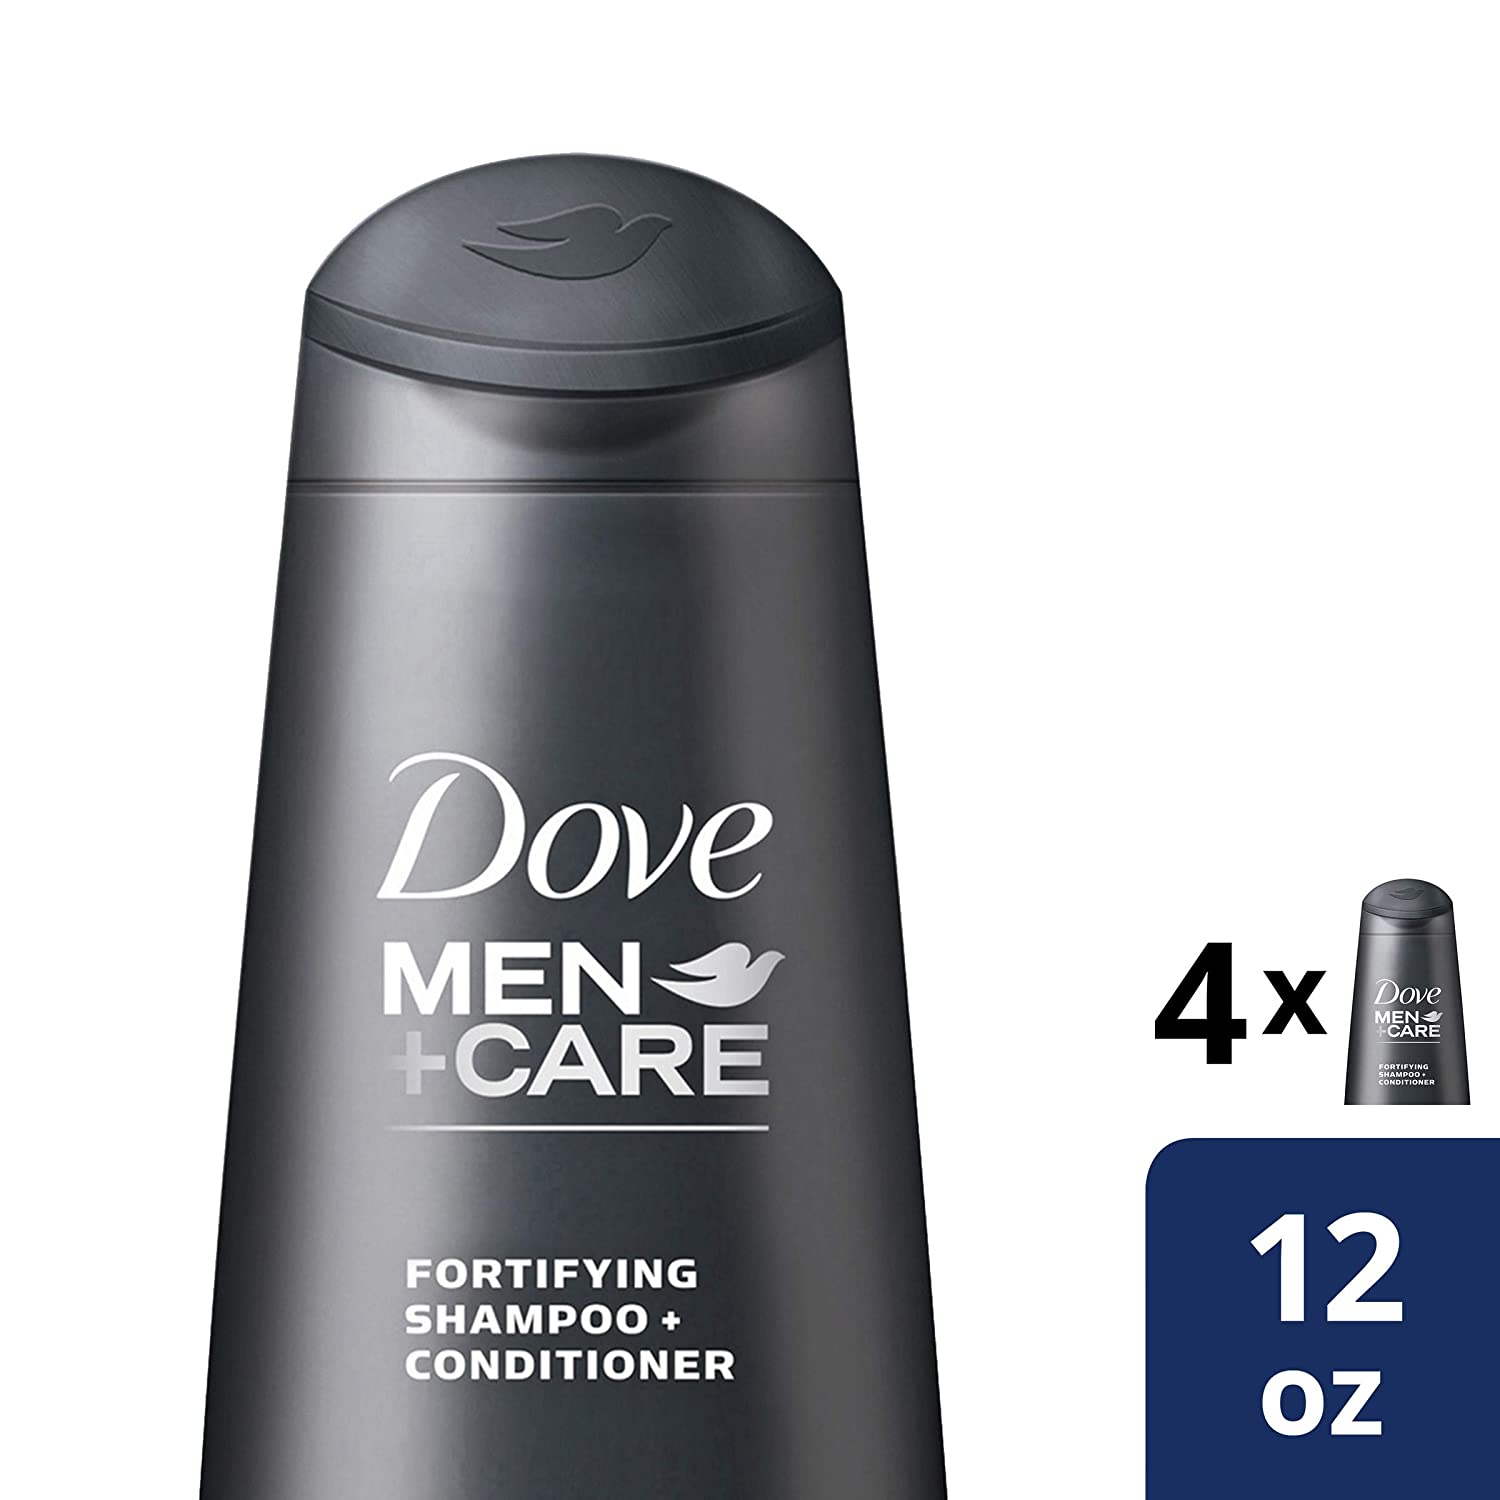 Dove Men+Care 2 in 1 Shampoo and Conditioner Thick and Strong 12 oz, 4 count